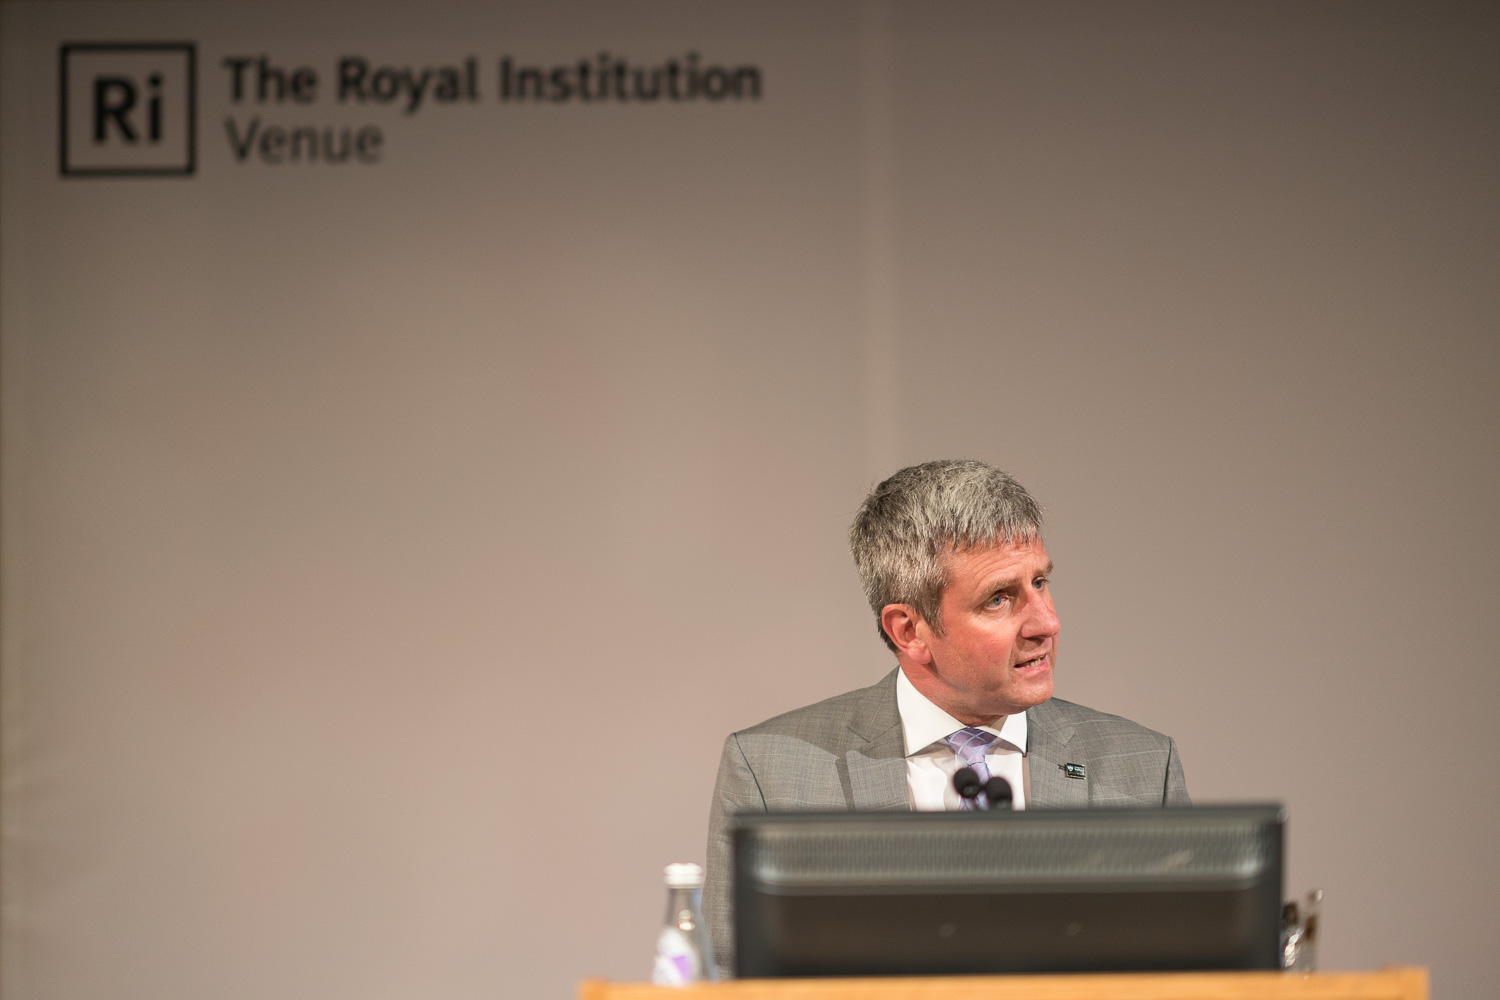 Brief: Photographs of a Vice-Chancellor for their marketing materials. Venue: The Royal Institution.